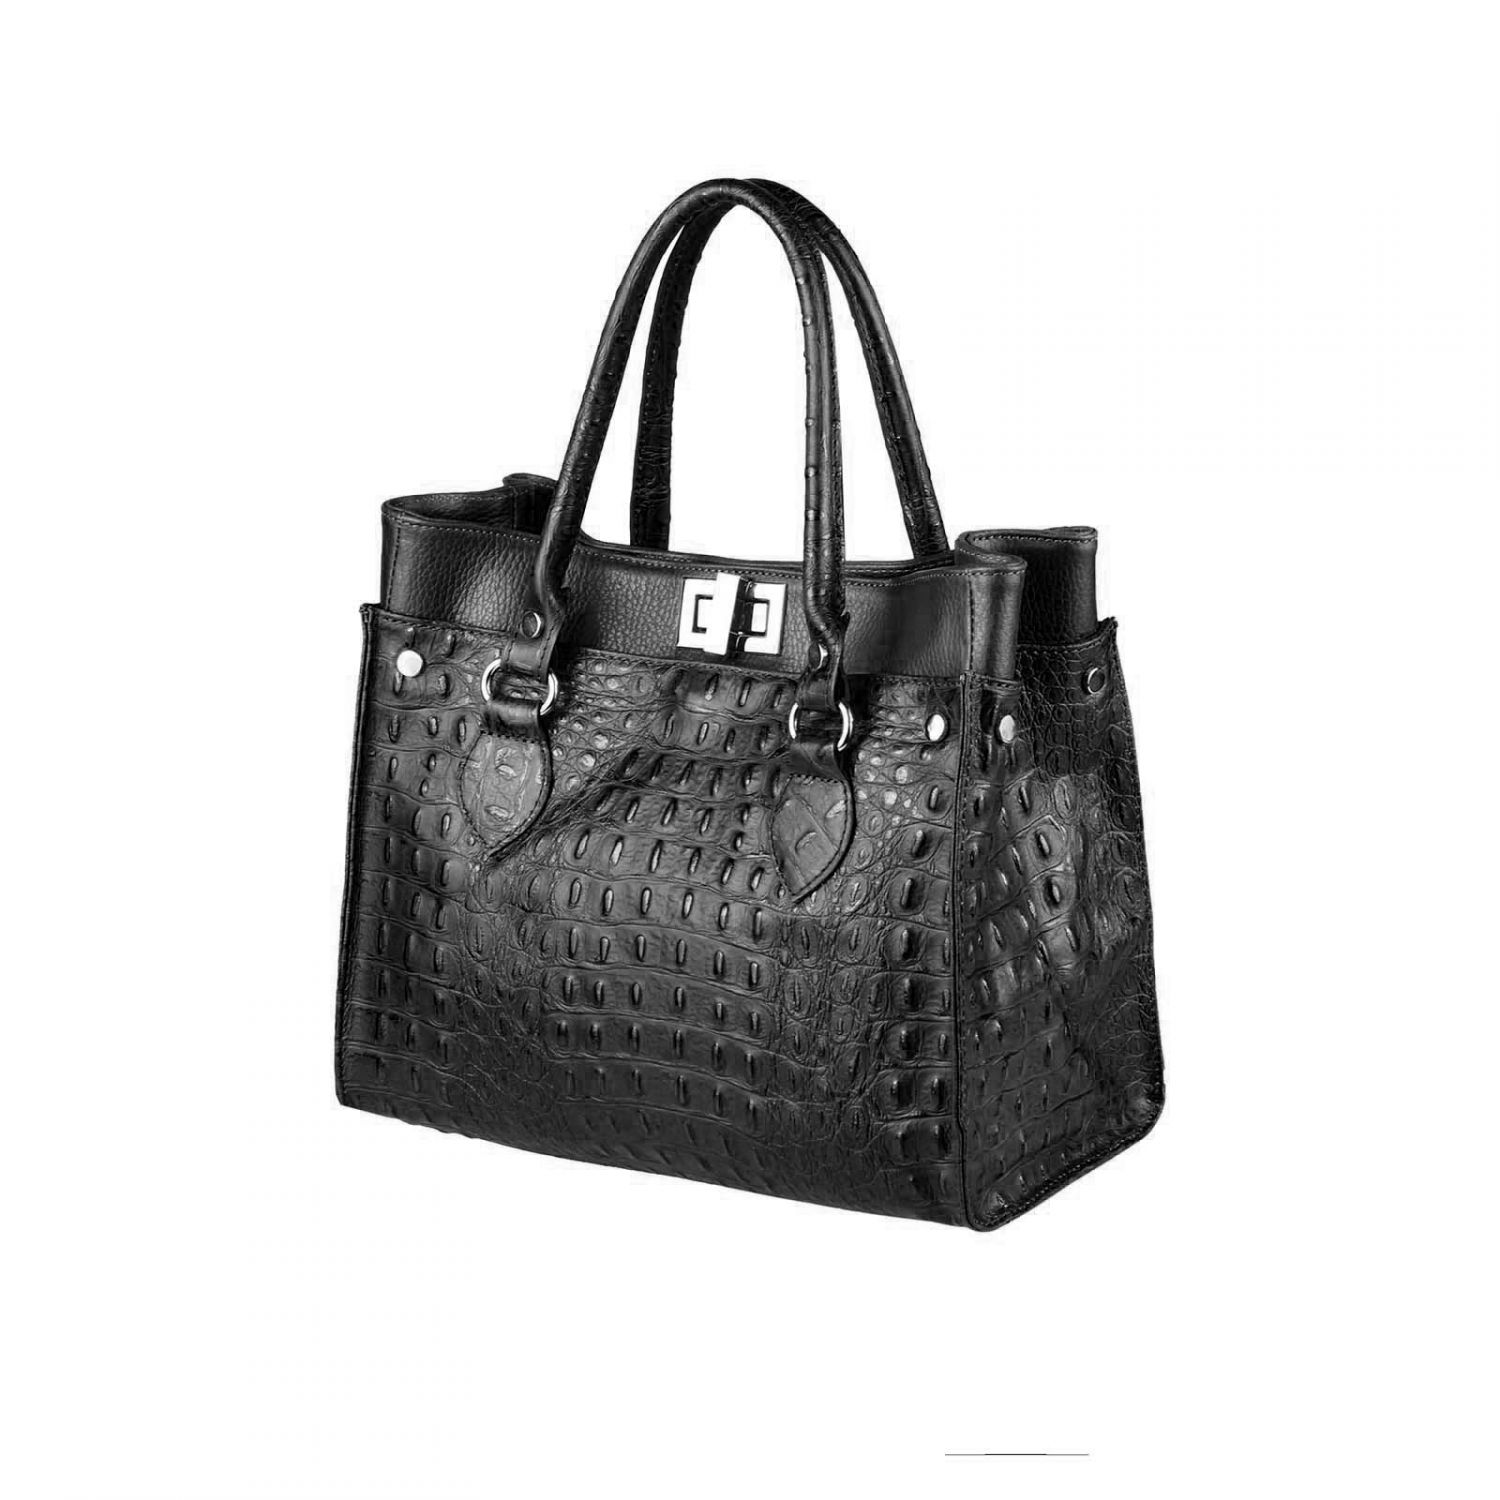 ital damen leder tasche business shopper handtasche echtleder henkeltasche bag ebay. Black Bedroom Furniture Sets. Home Design Ideas